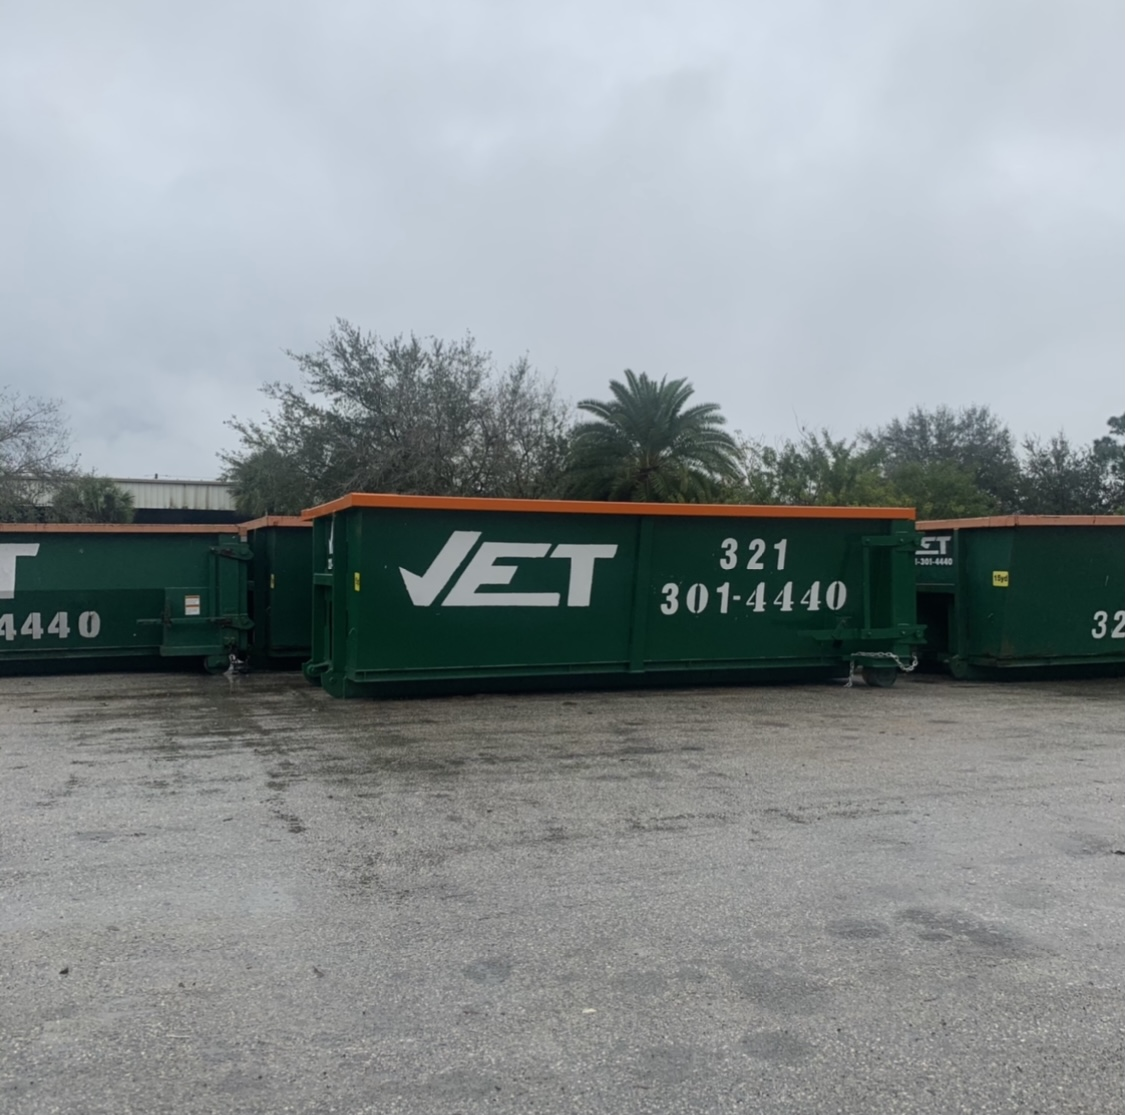 Indialantic dumpster rentals near me